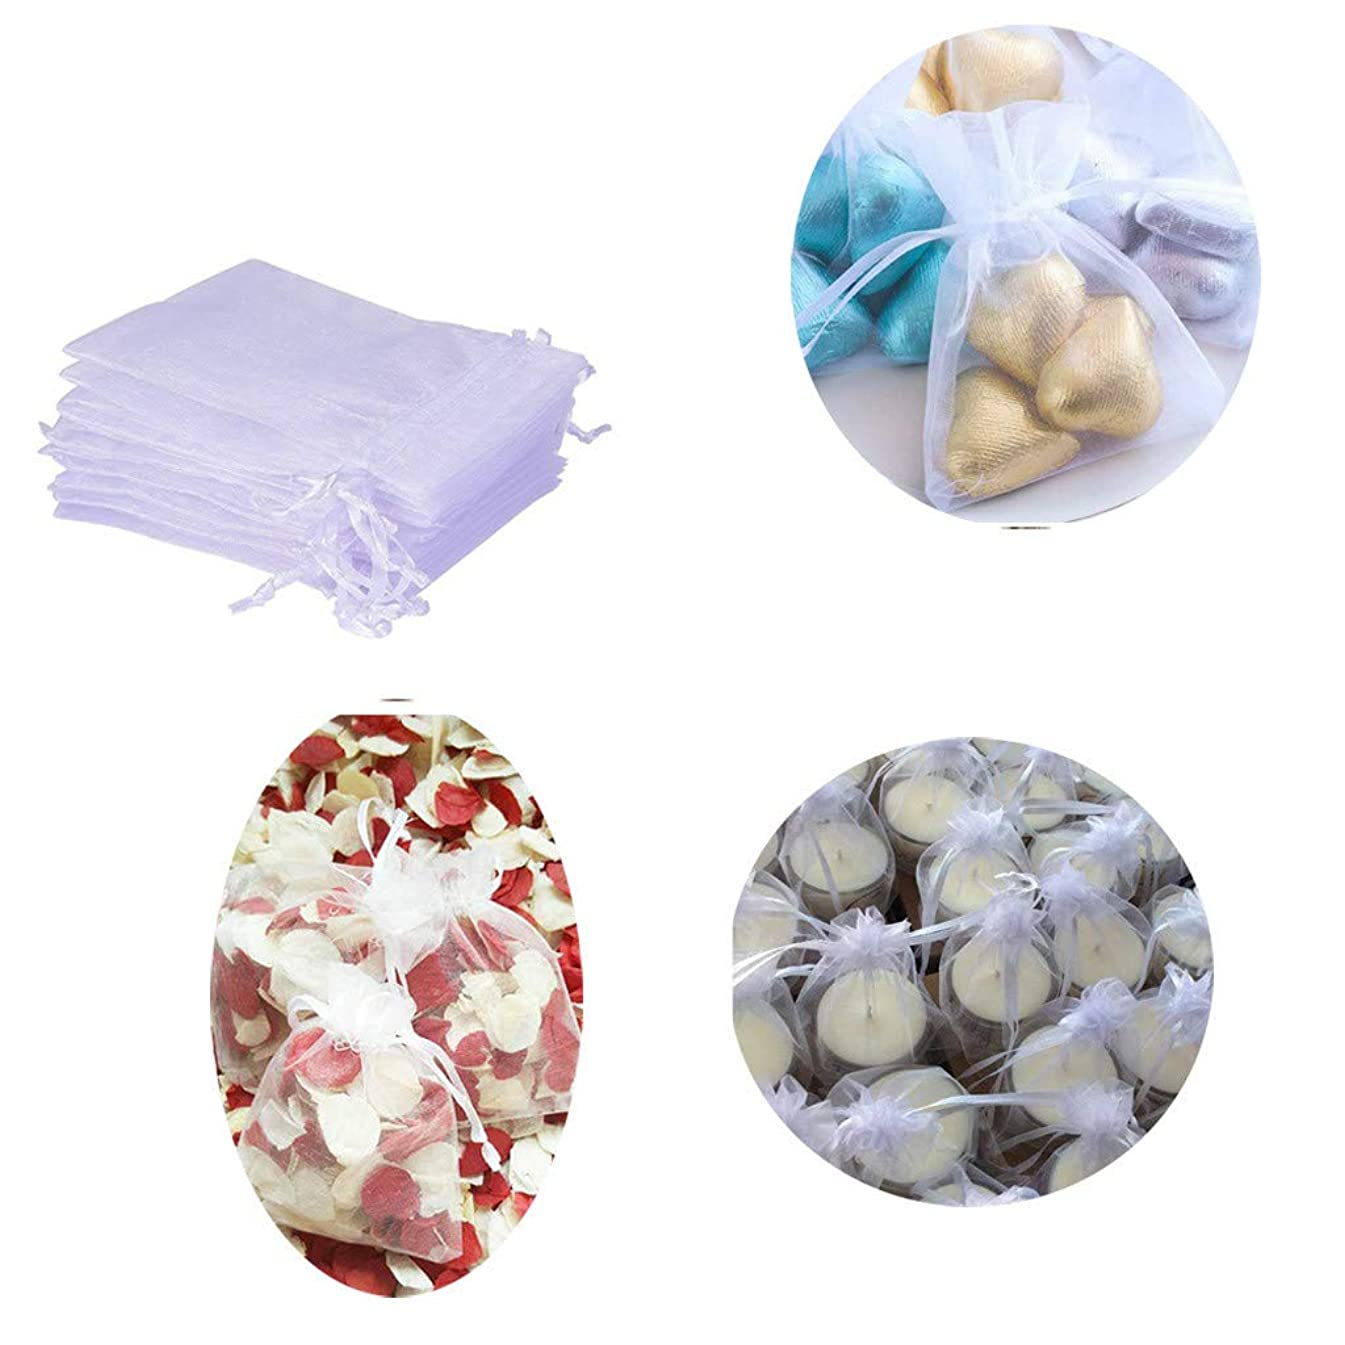 NszzJixo9 100 Organza Gift Bags-With Drawstring,For Wedding Party Love And Jewelry Packaging,Party Favors, Candy, Jewelry, Makeup, Cosmetics, Bathroom Soaps Pouches